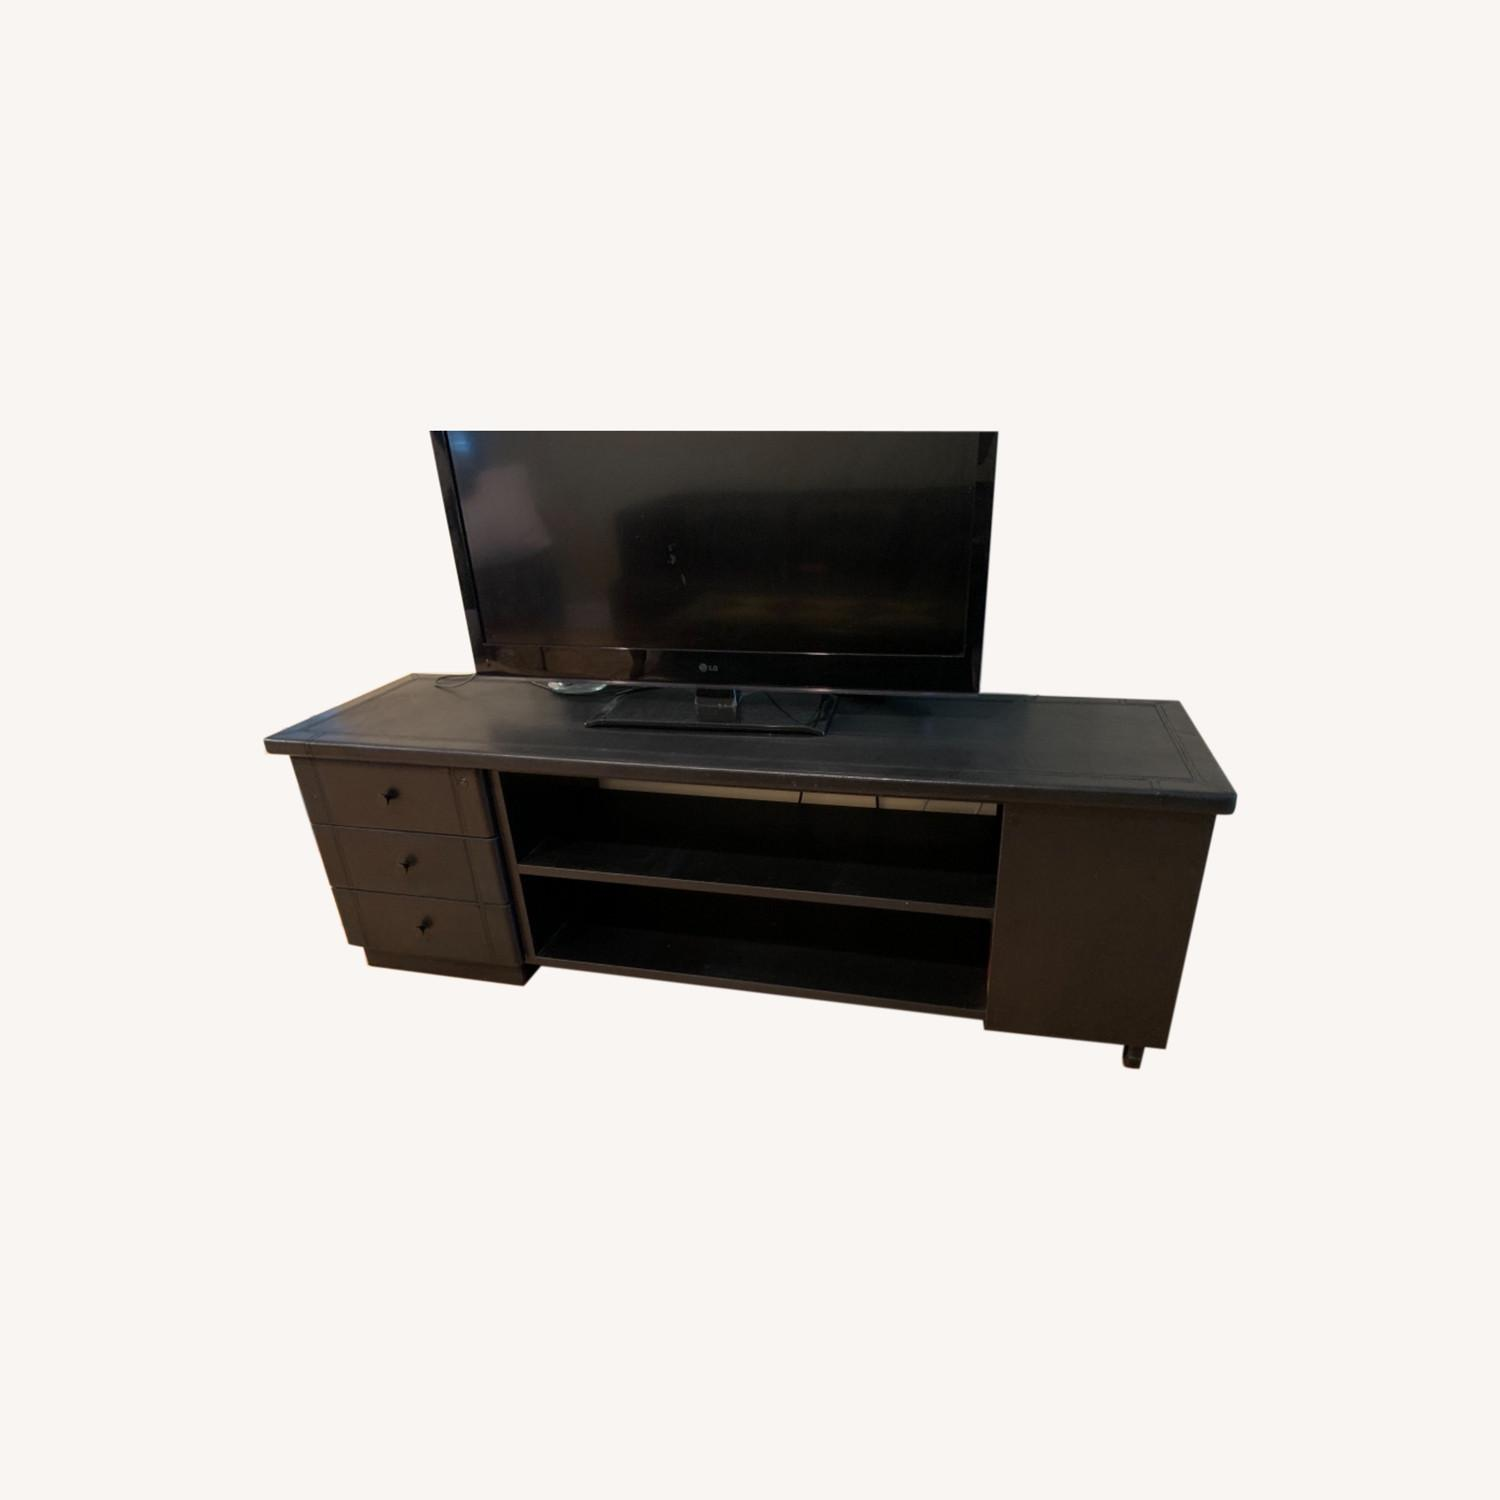 Black Leather Tv Stand Console - image-0